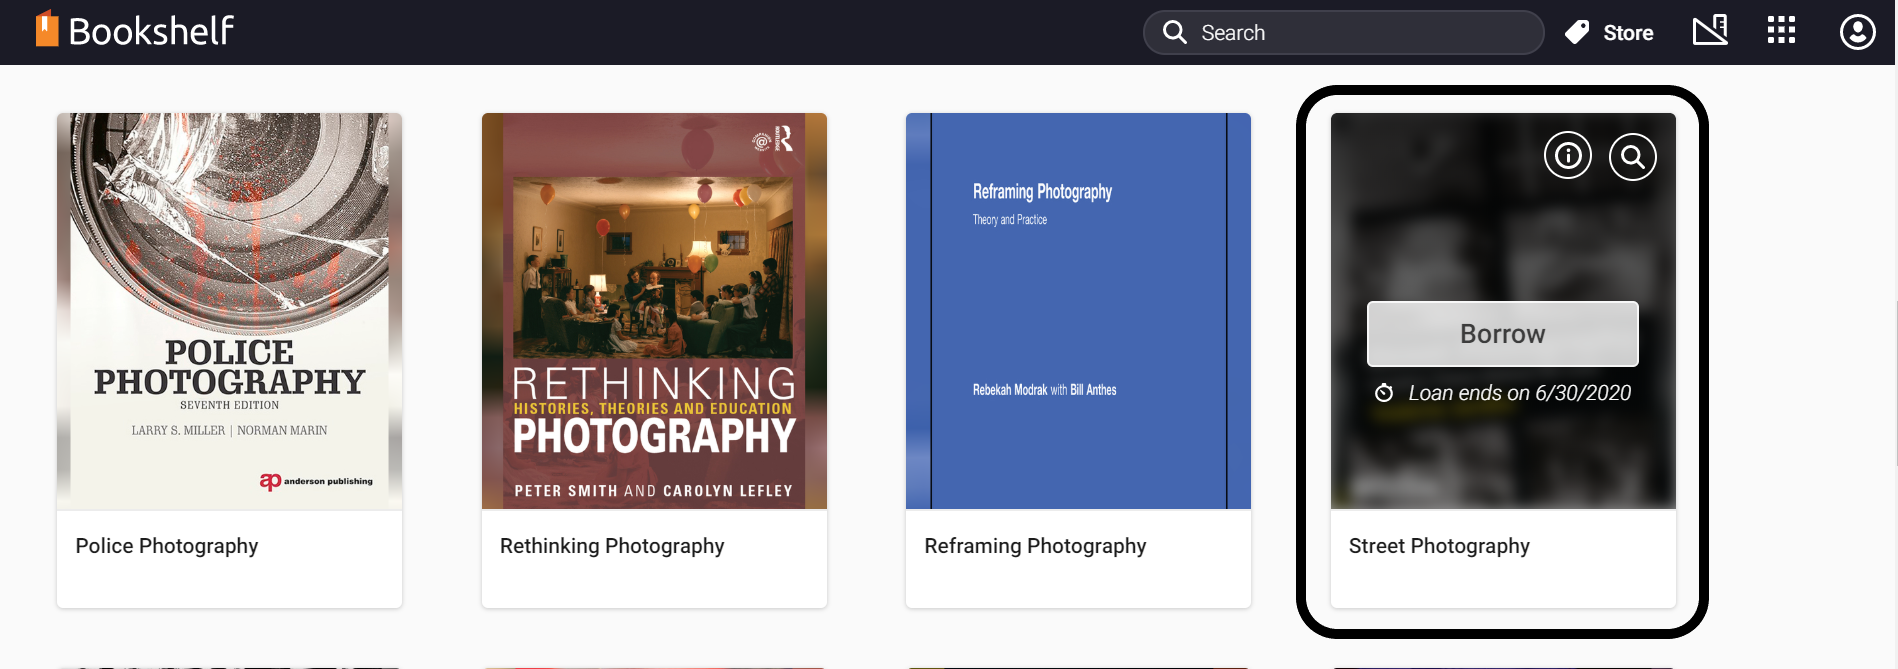 Borrow an eBook to add it to your personal bookshelf